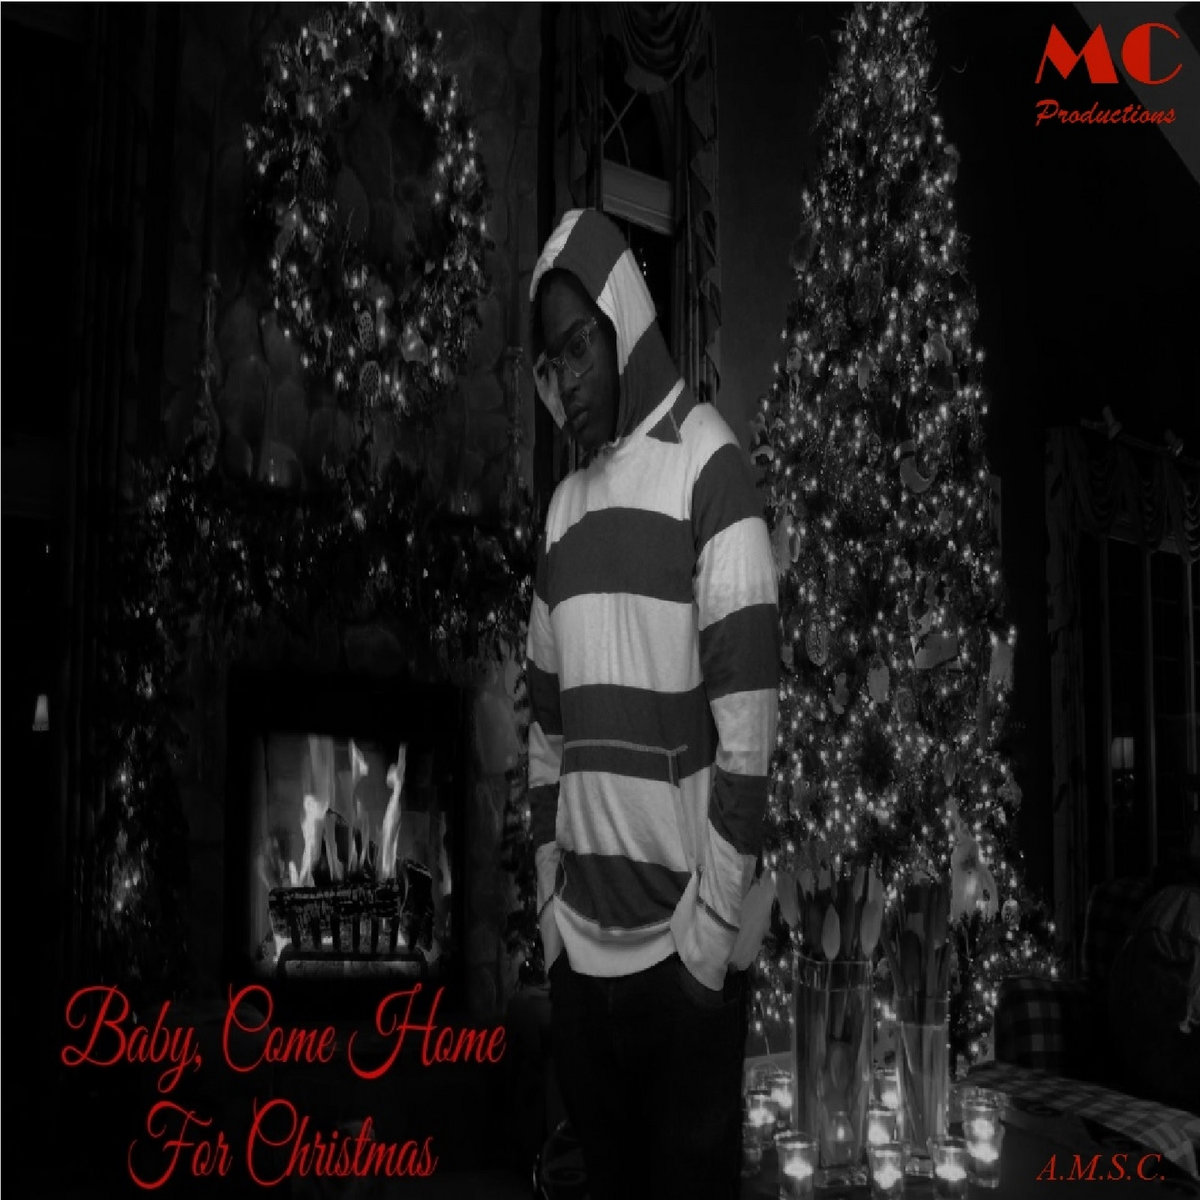 Come Home For Christmas.Baby Come Home For Christmas Feat David Jolly Mc